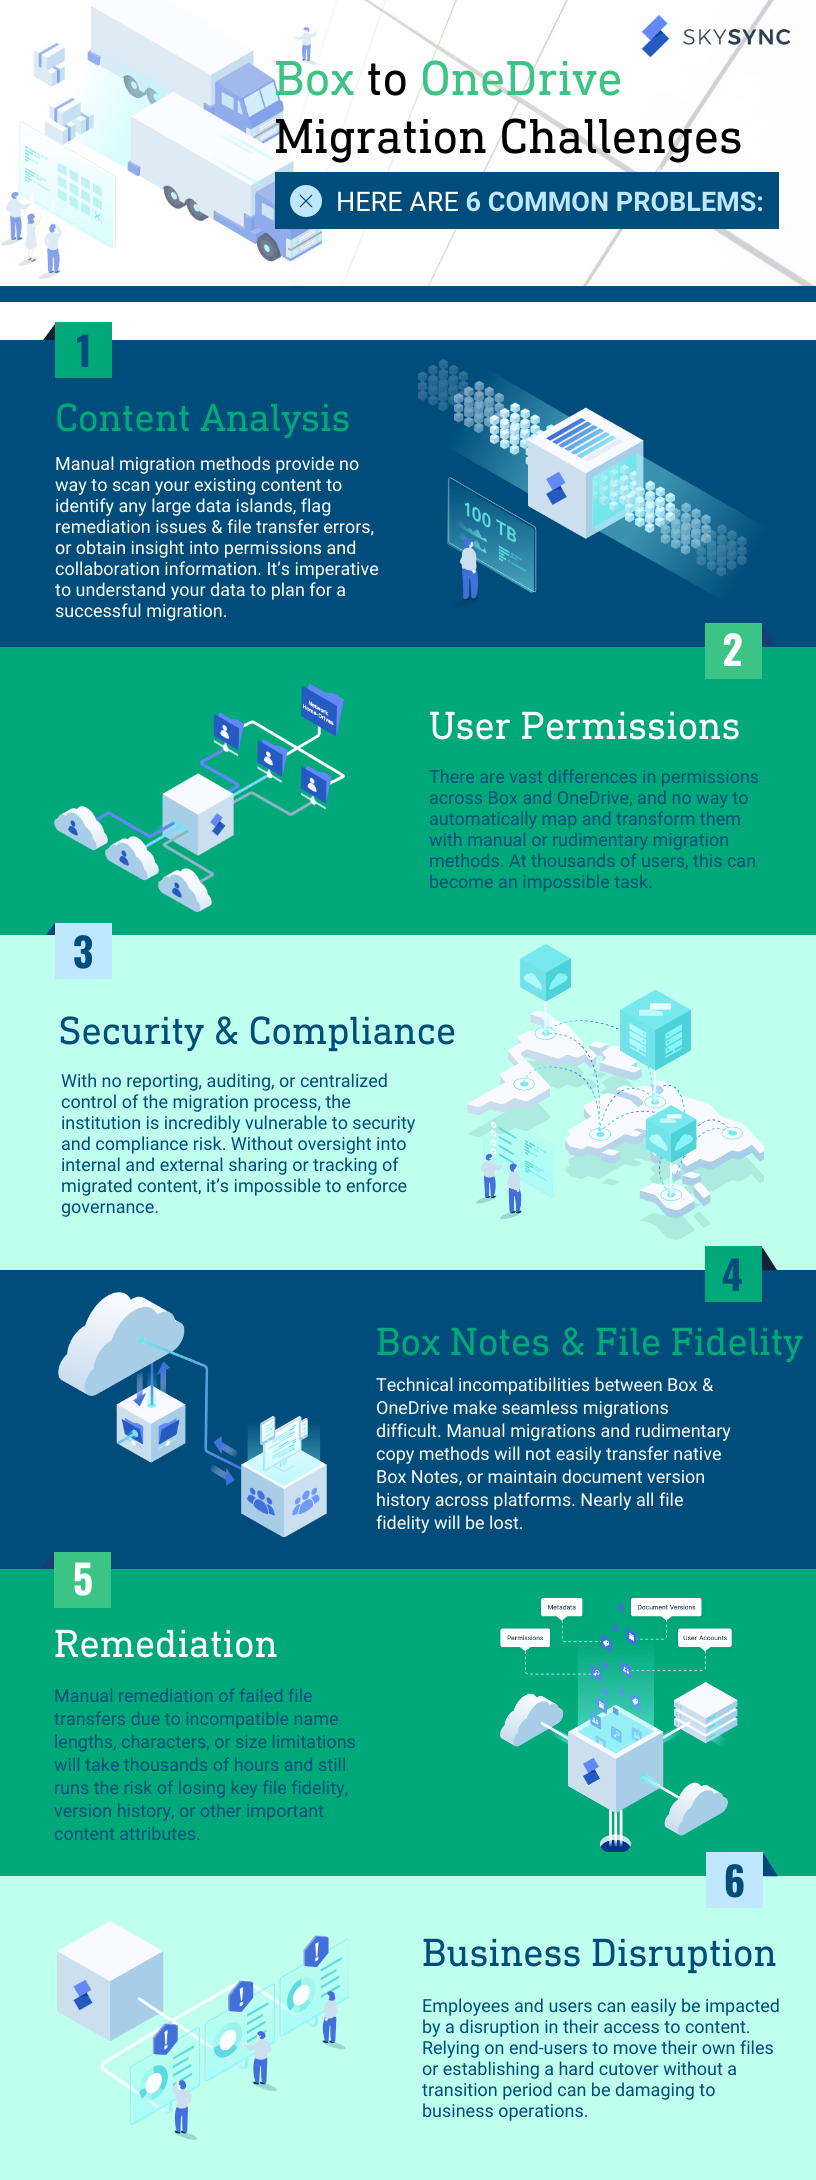 6 Common Box to OneDrive Migration Challenges Infographic SkySync